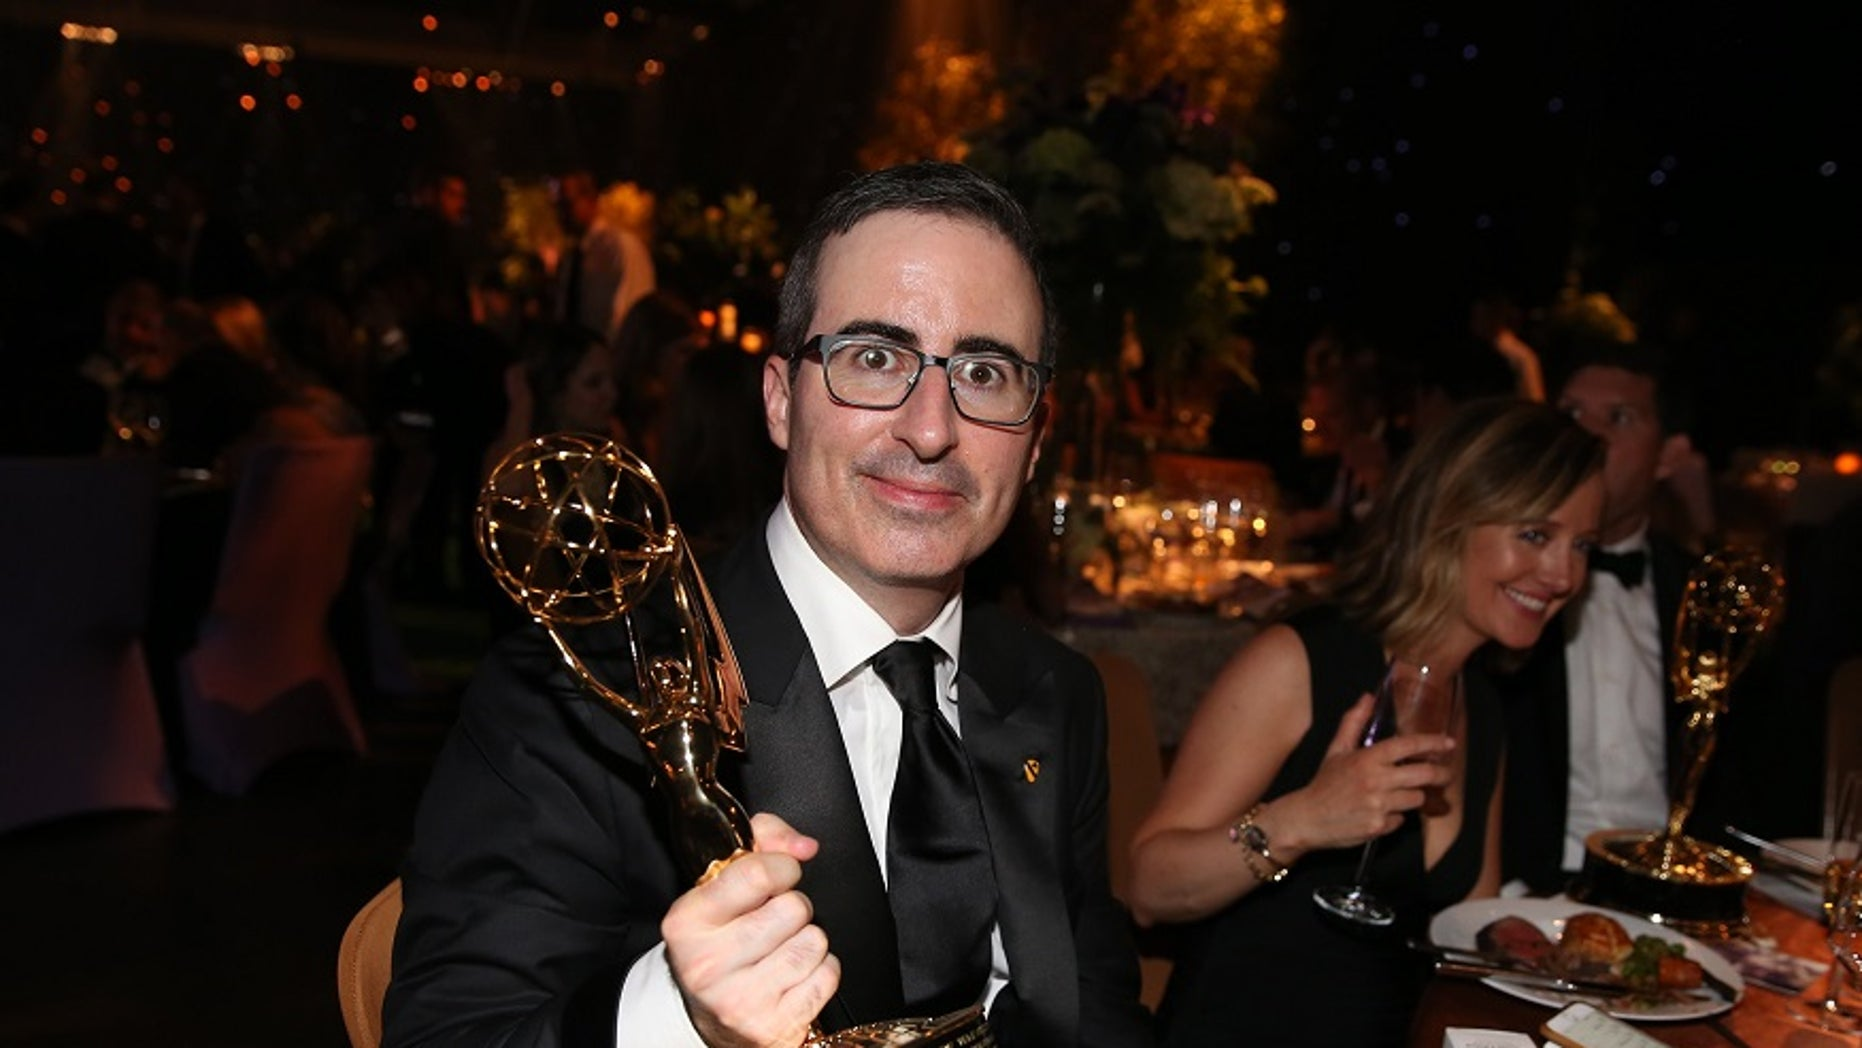 """John Oliver, the host of HBO's """"Last Week Tonight,"""" has been sued by Robert E. Murray, the head of the country's largest private coal mining company, over a segment the comedian did on coal on Sunday, June, 18, 2017."""